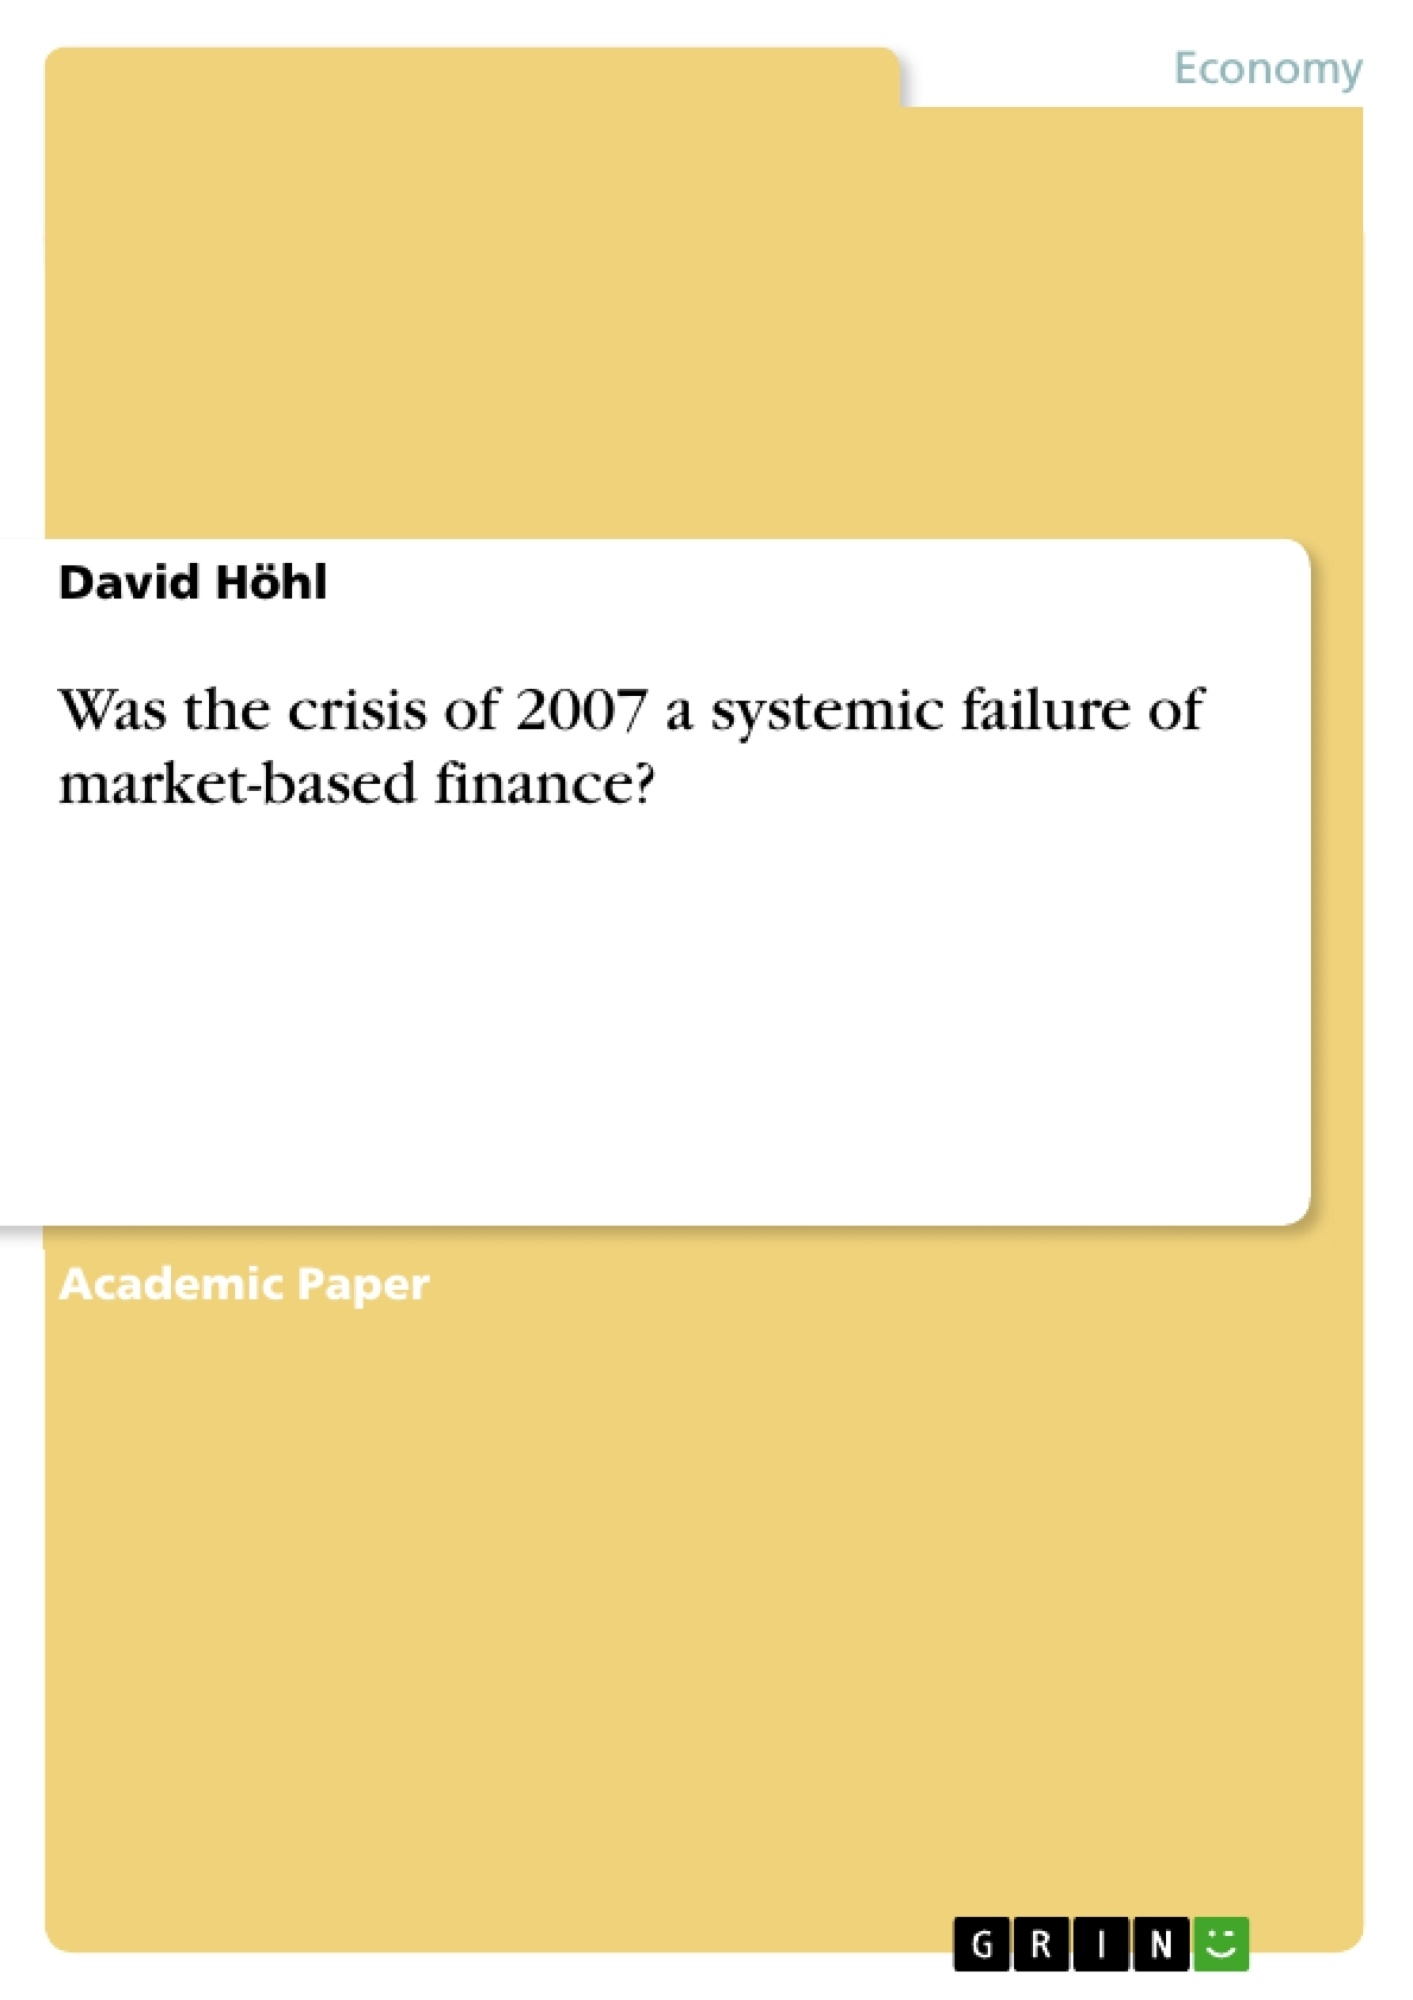 Title: Was the crisis of 2007 a systemic failure of market-based finance?